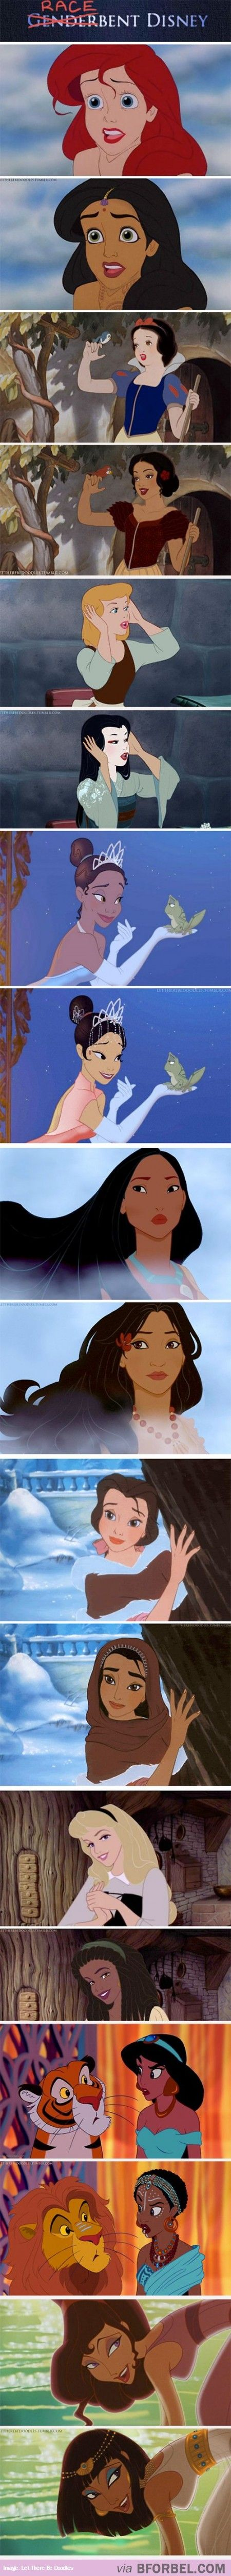 """Racebent"" Disney princesses...I love these! I particularly like Ariel, Snow White, and Pocahontas!"